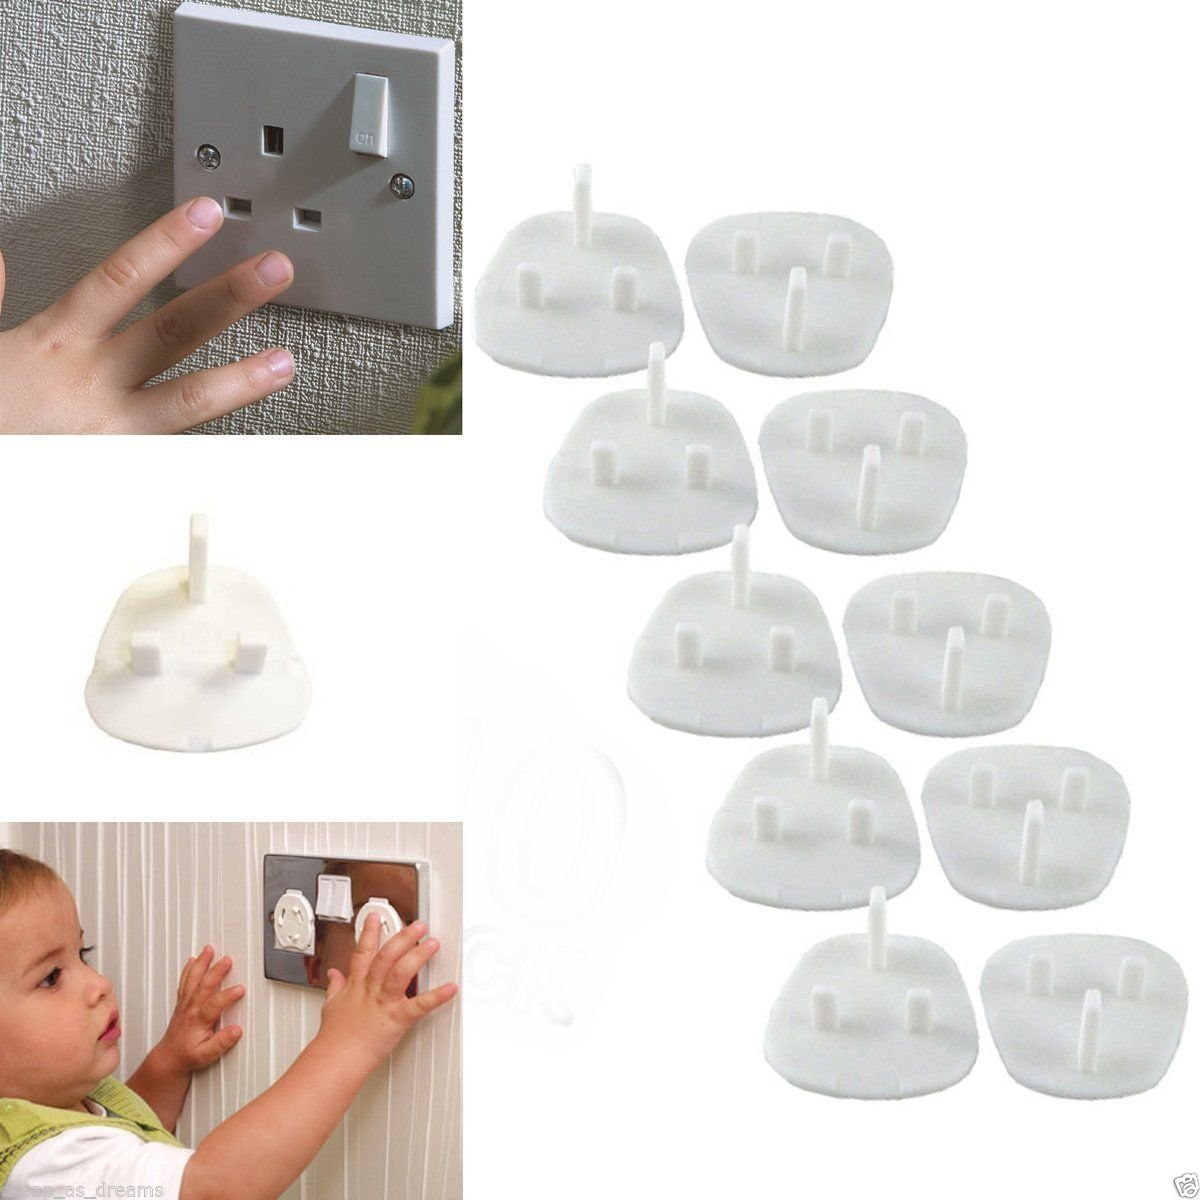 10 X Plug Socket Cover Baby Proof Child Safety Protector Guard Mains Electrical Unknown